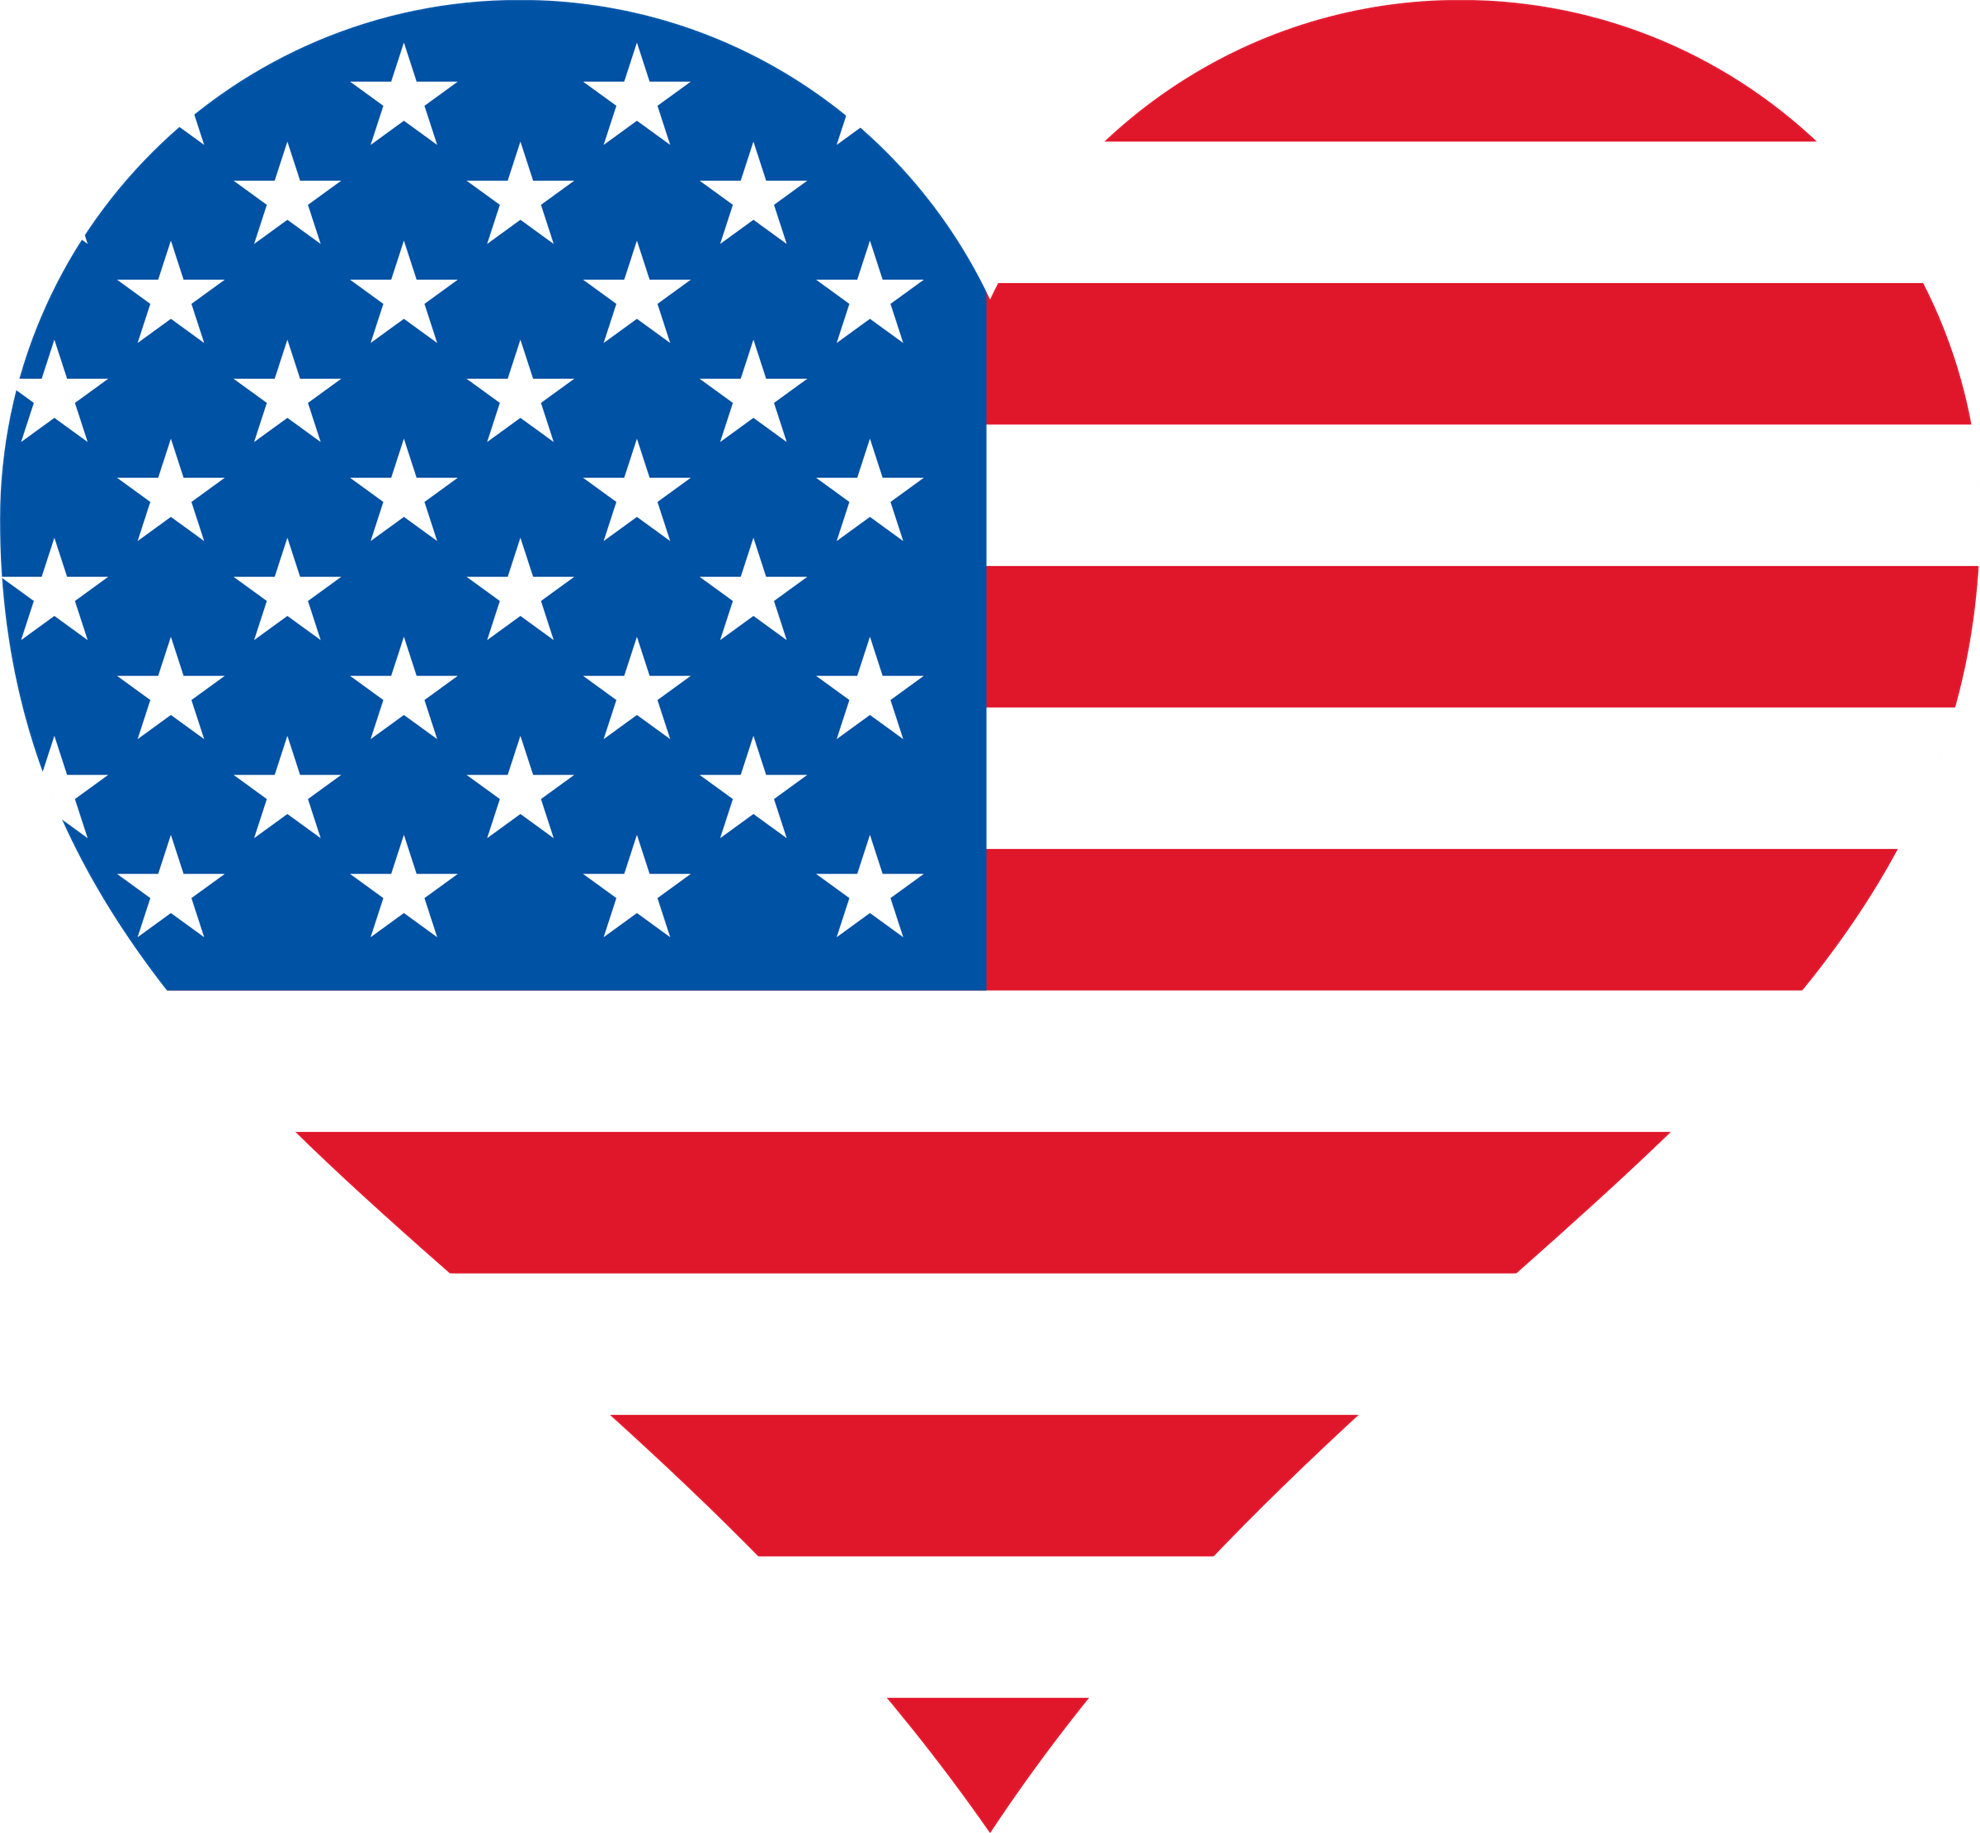 Heart thank you clipart clip art transparent Thank You Veterans Clipart at GetDrawings.com | Free for personal ... clip art transparent